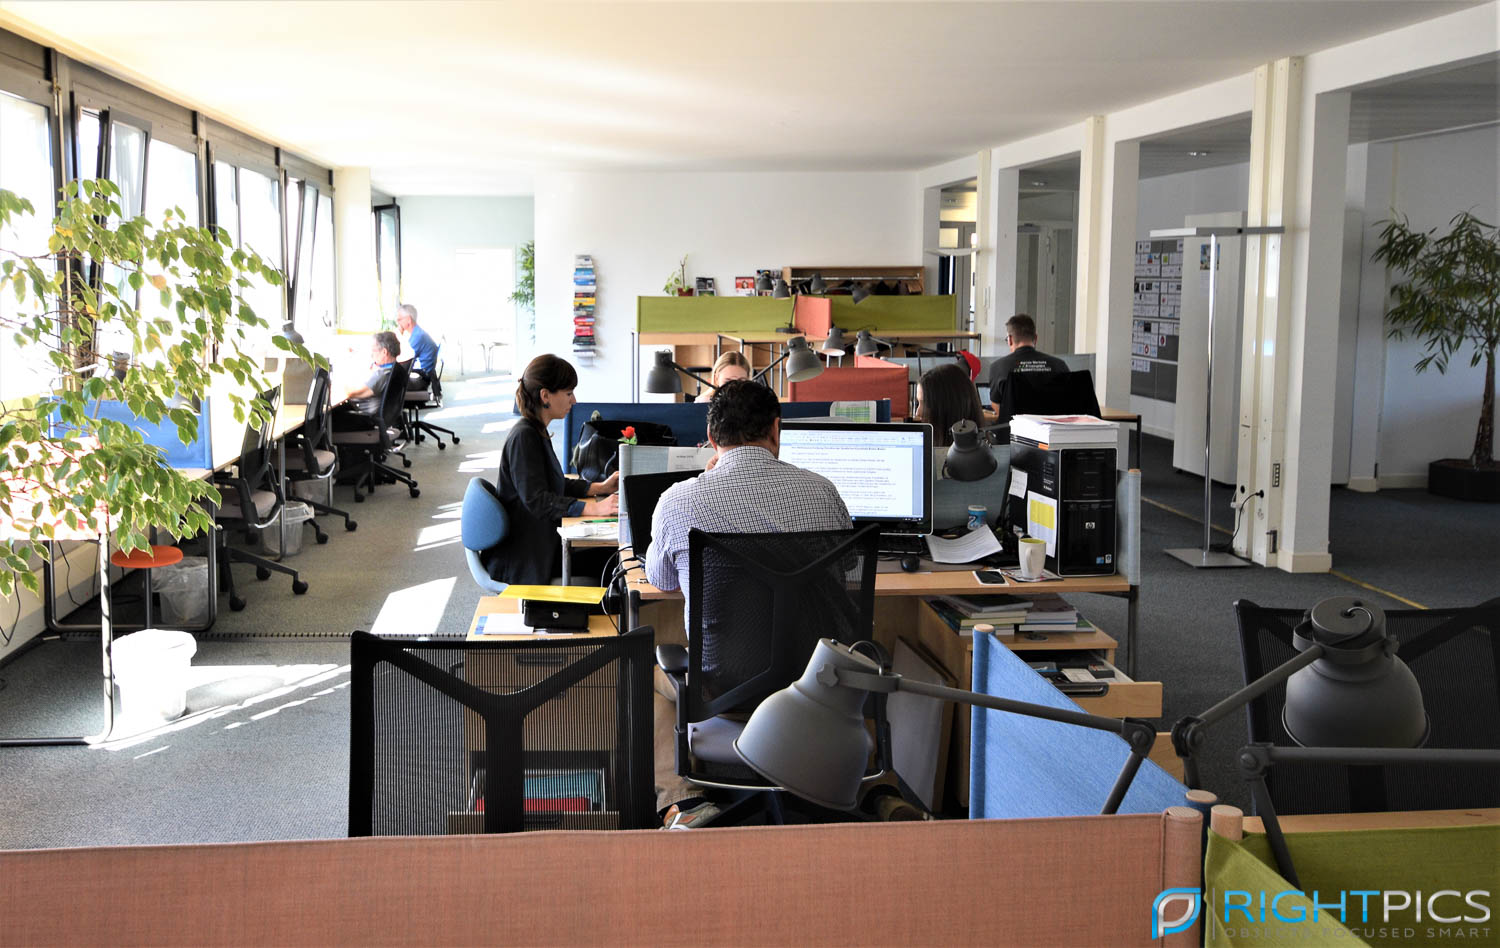 Impression of coworking space Startup Academy Basel